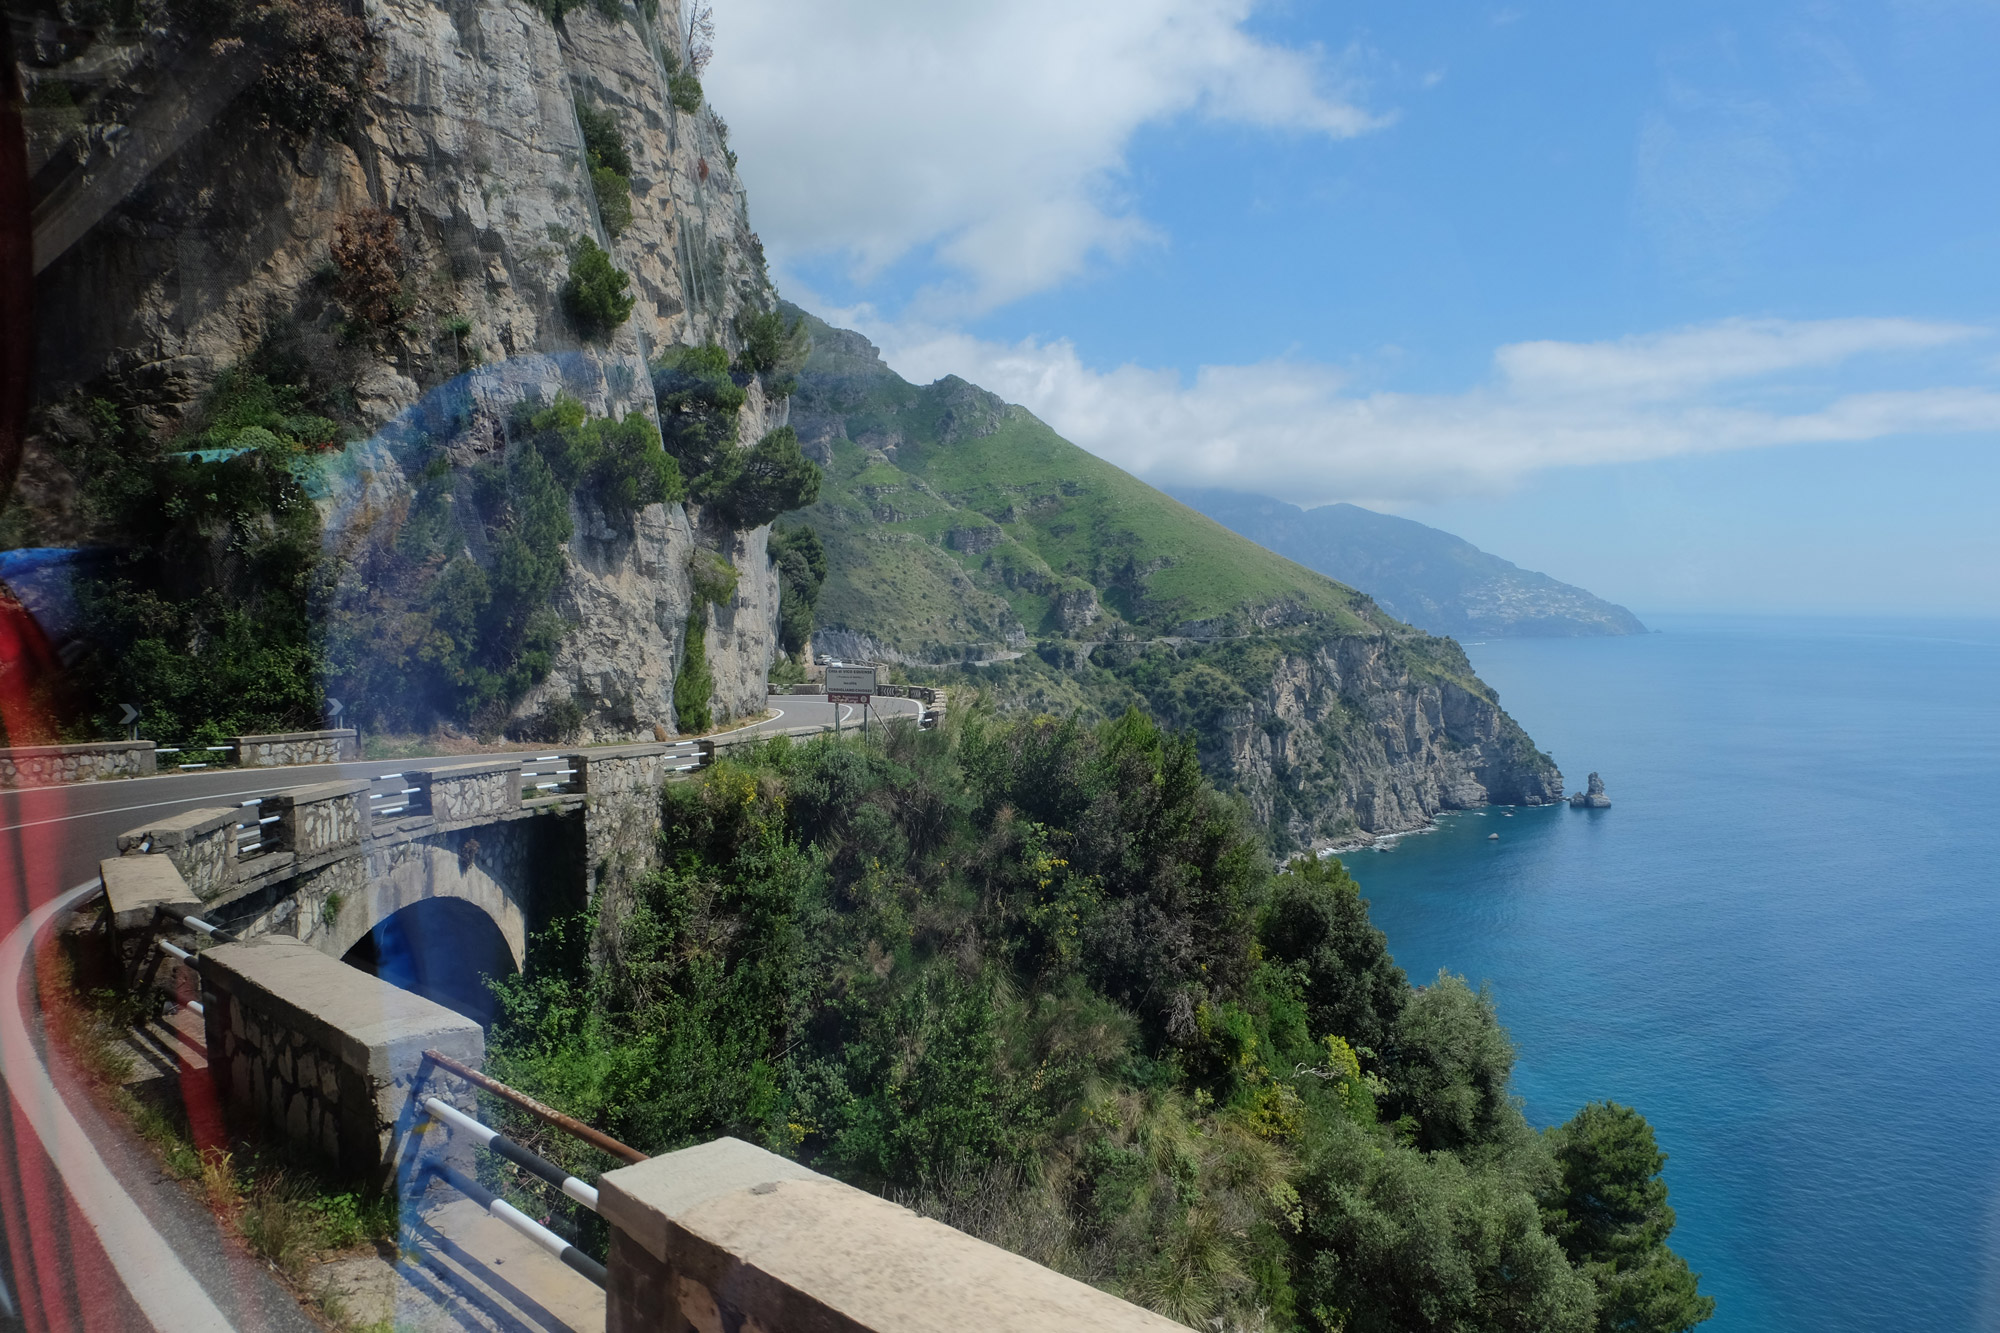 The Amalfi coast road from the Hop On Hop Off bus